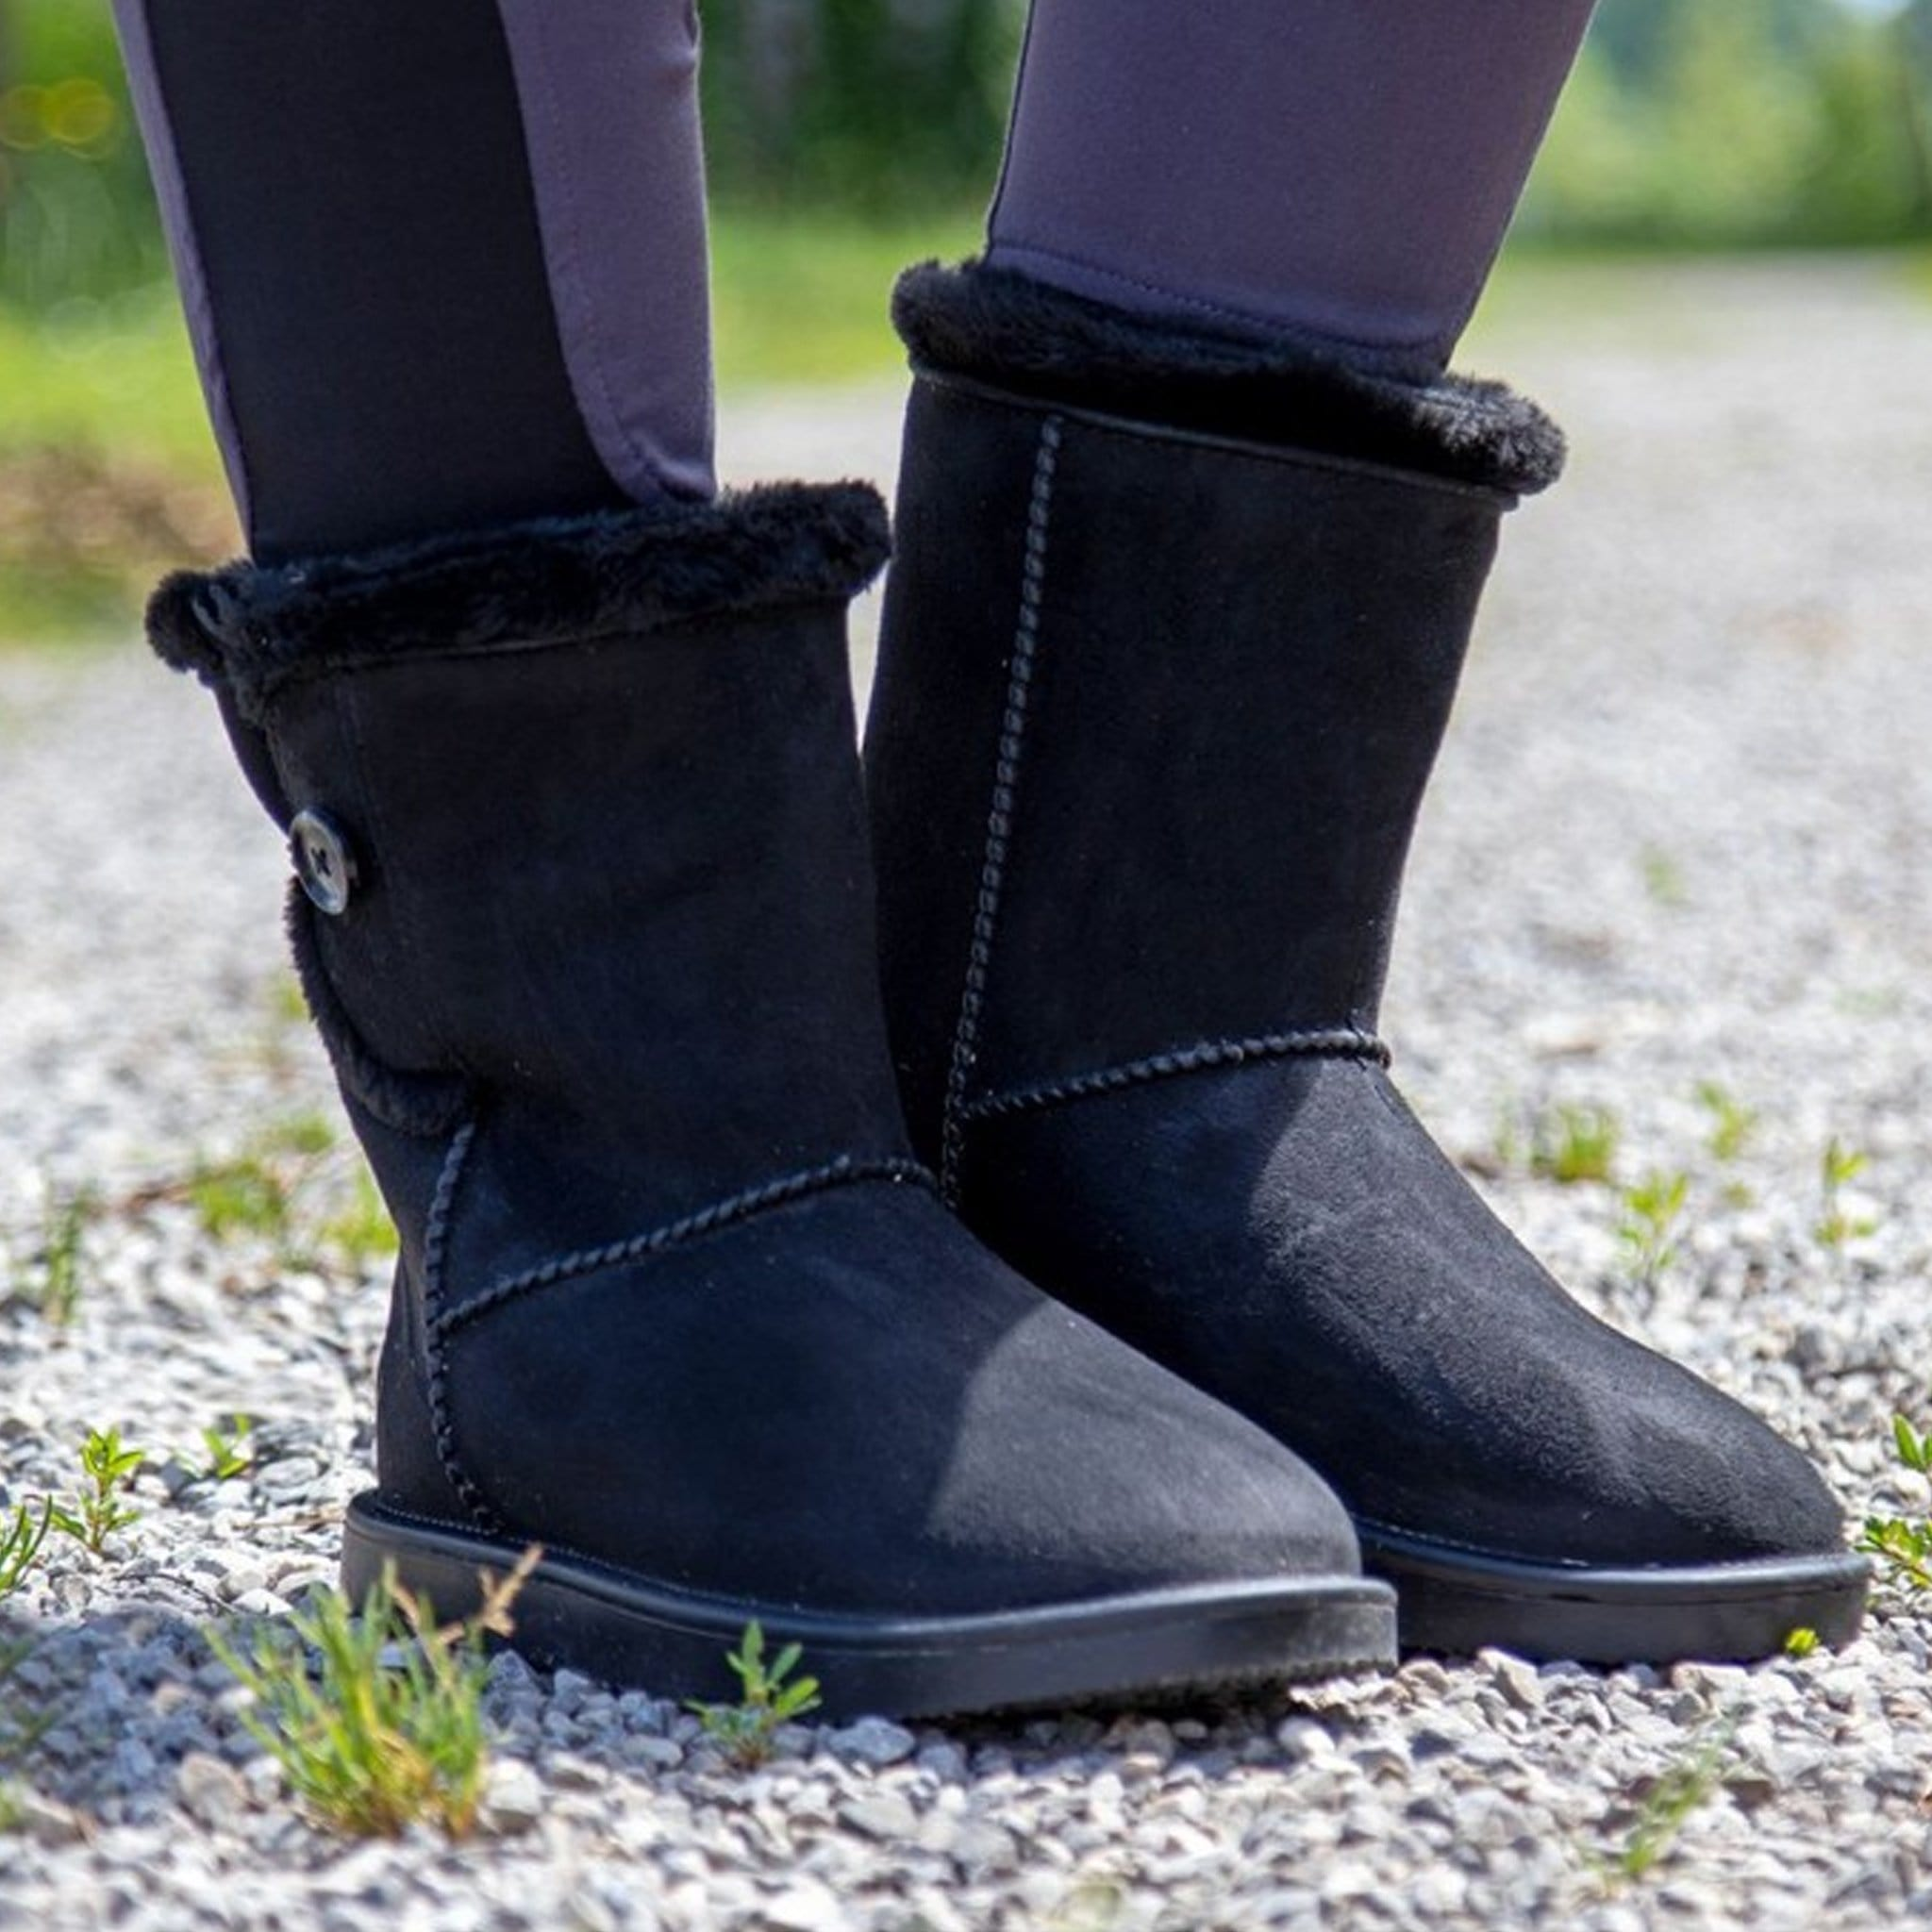 HKM Davos All Weather Fur Boots Black 12563